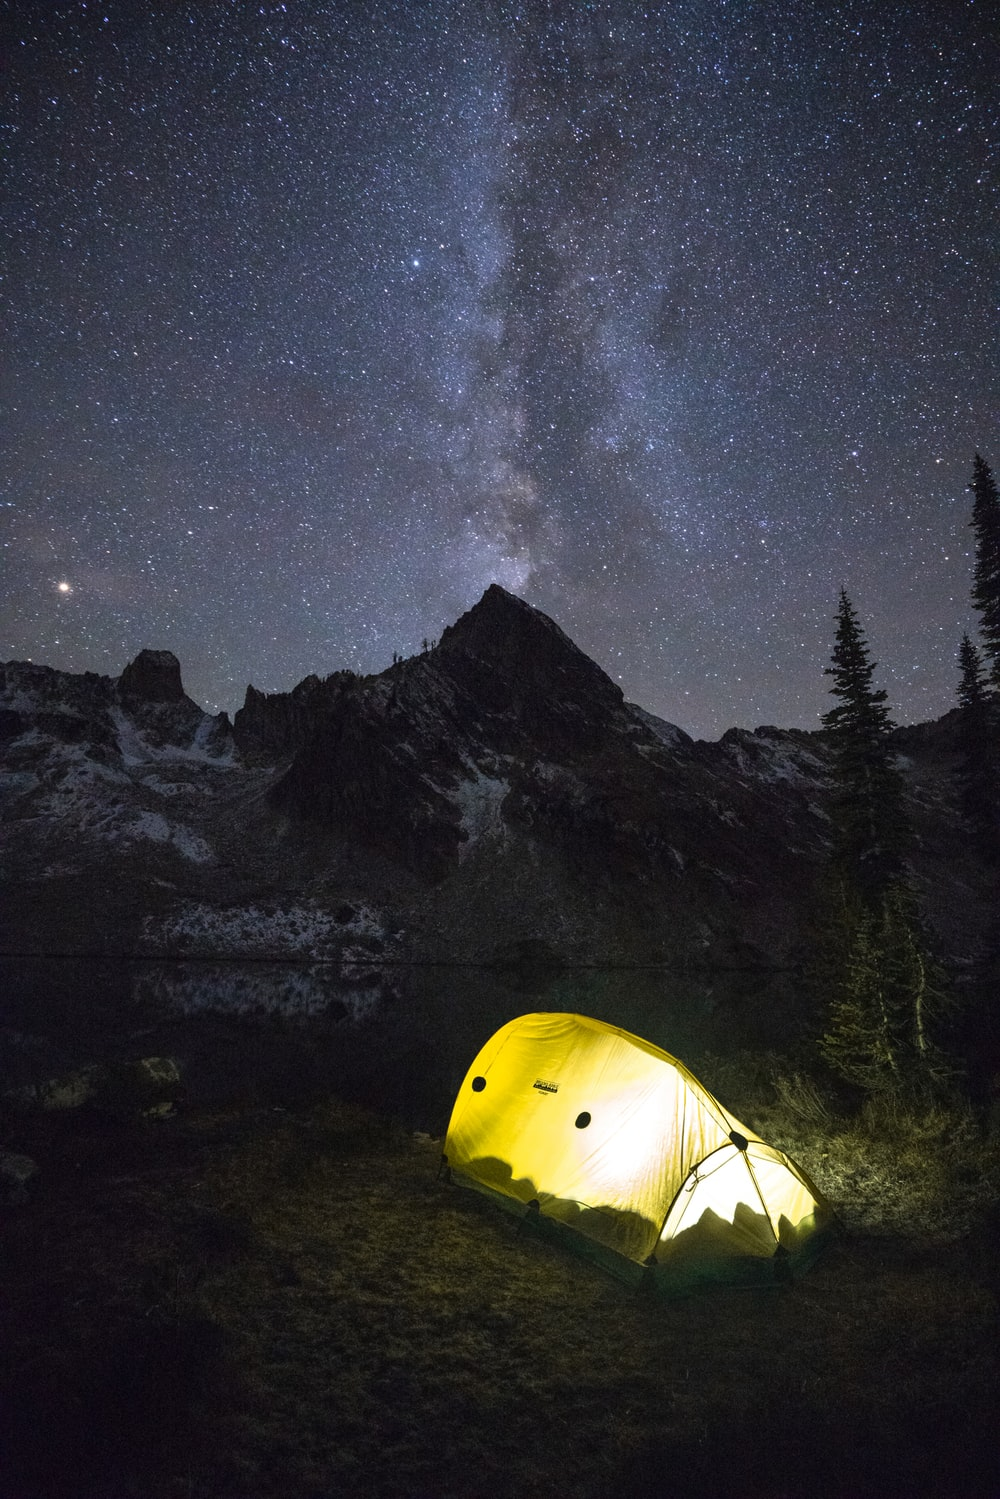 lighted lamp in yellow dome tent under milky way